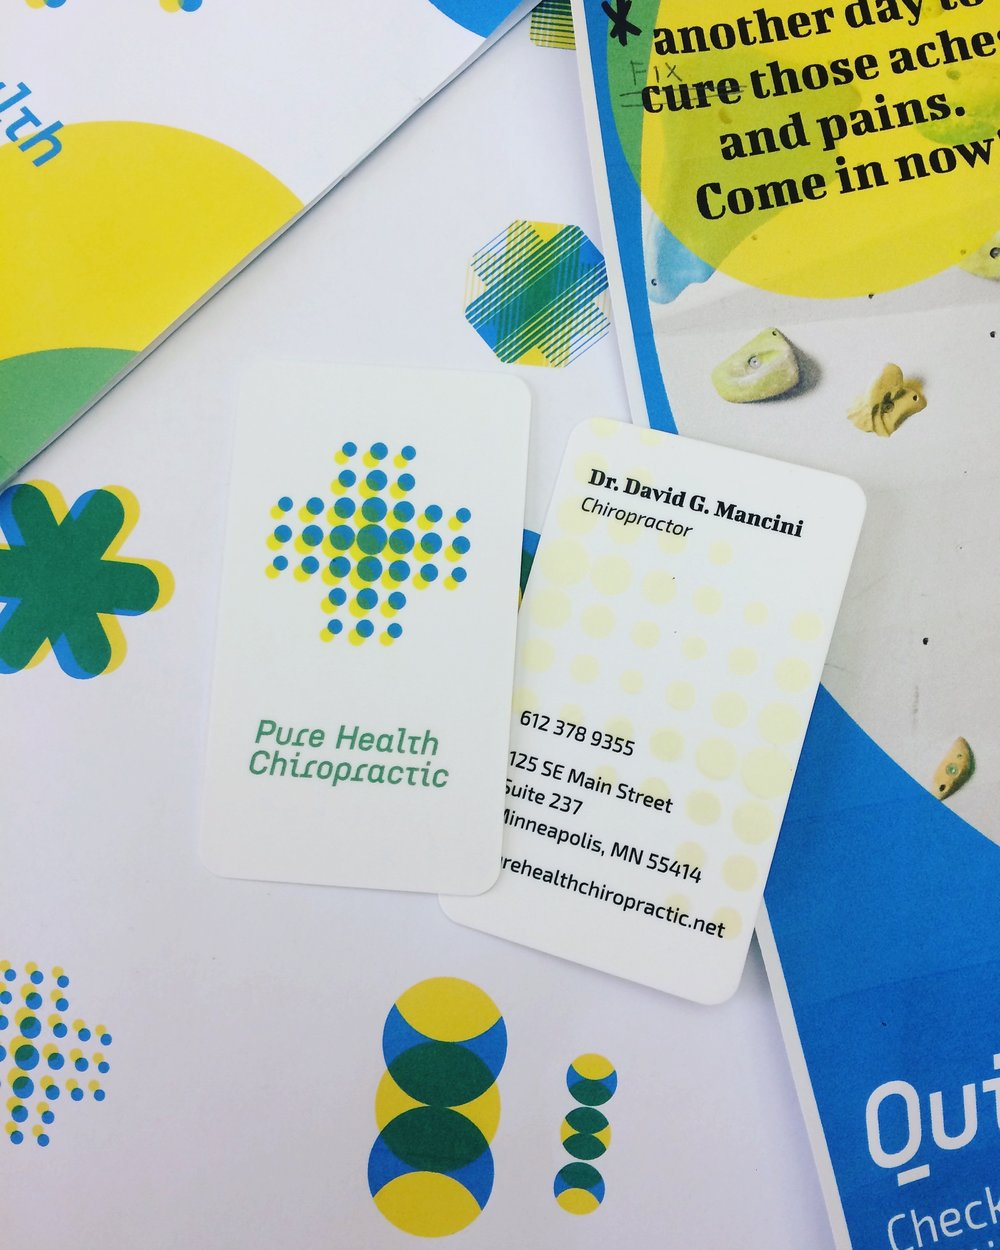 Business cards created for Pure Health Chiropractic, as well as a peek at some of our process work.